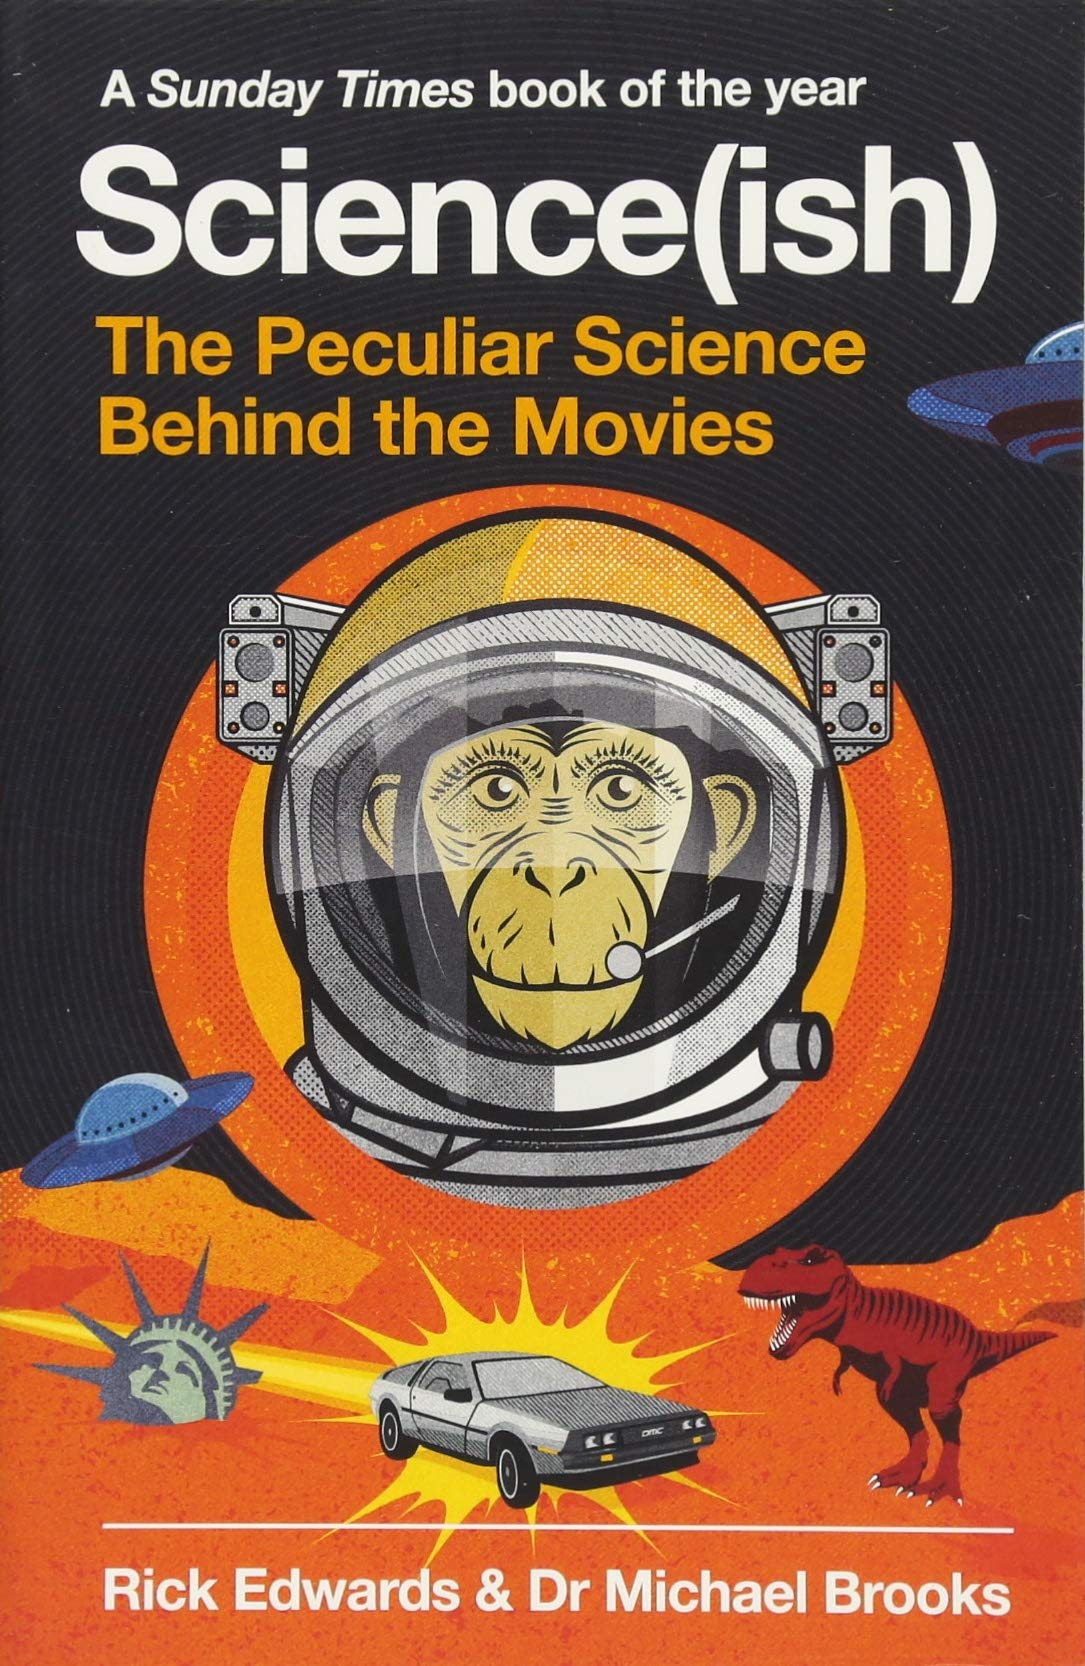 scienceish the peculiar science behind the movies